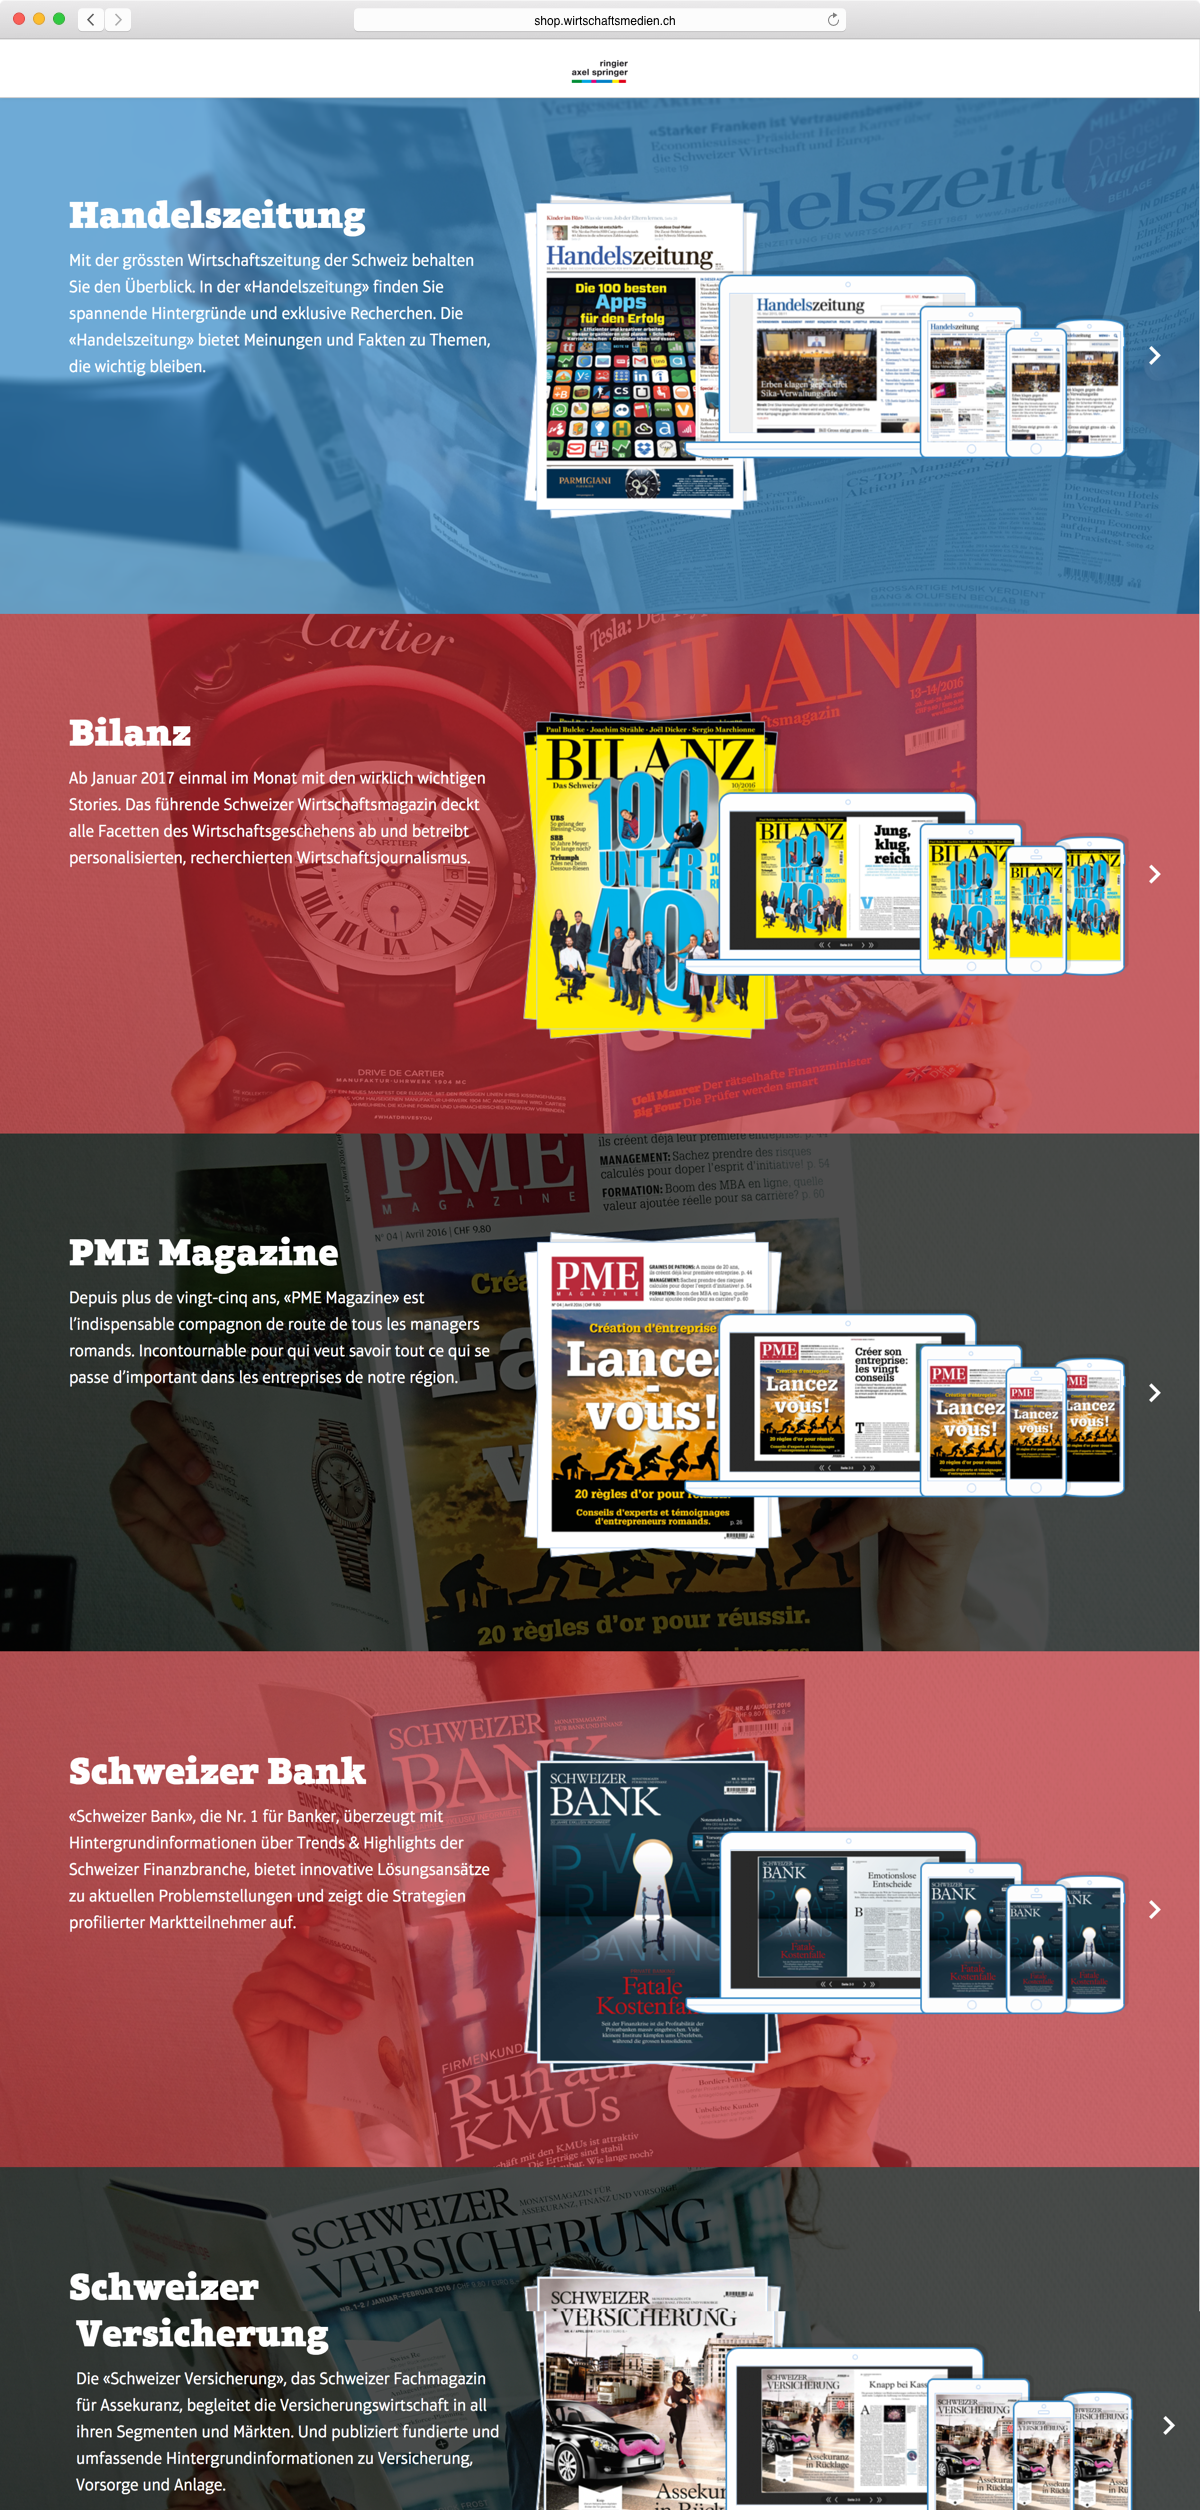 AS Medien - Featured Image